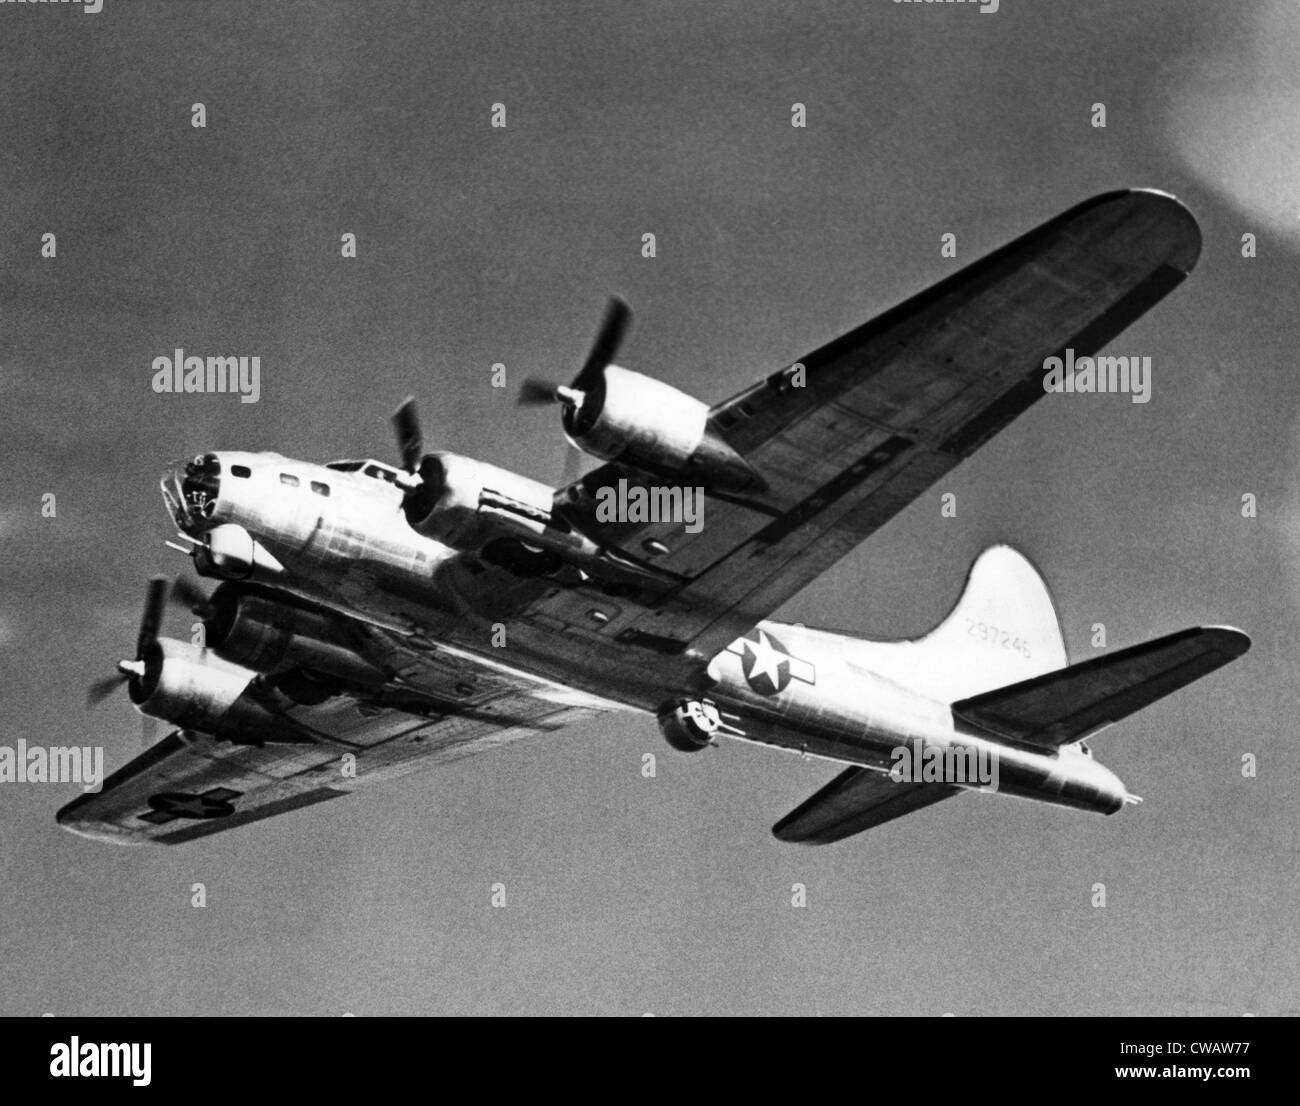 Boeing B-17 Flying Fortress, used against the Germans during World War II, March 1944. Courtesy: CSU Archives/Everett Stock Photo